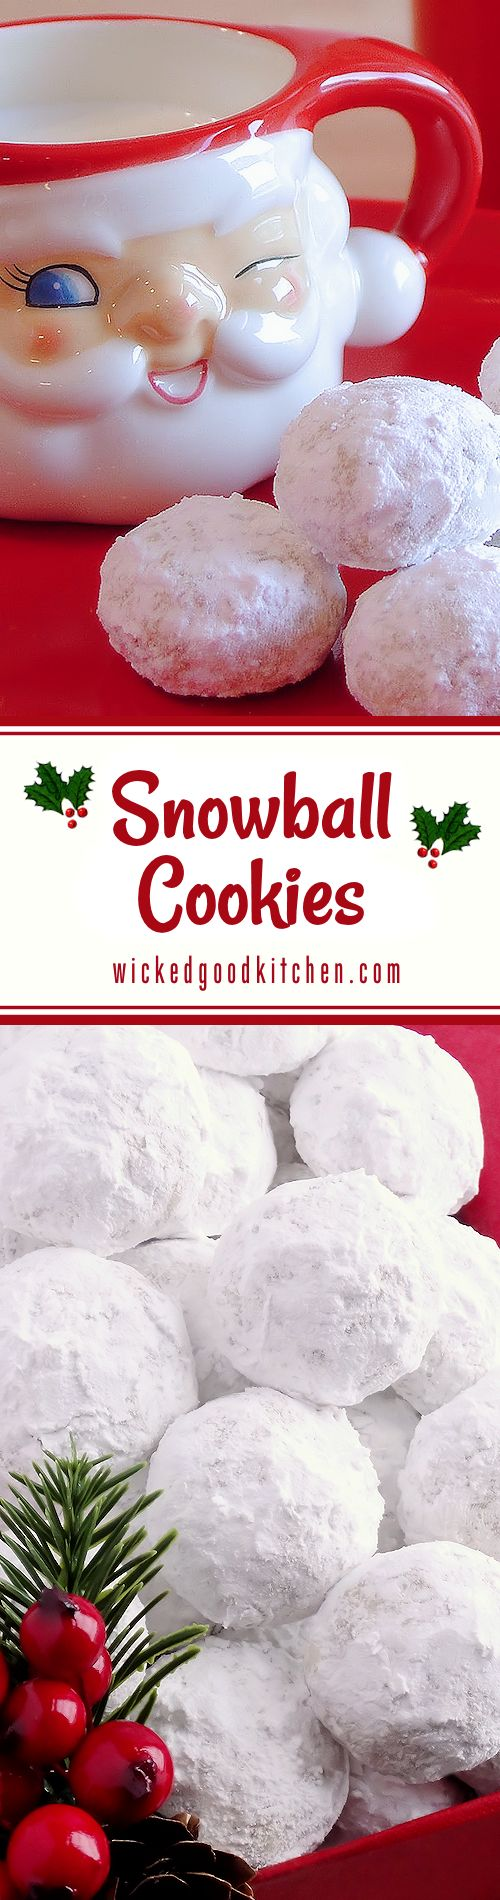 Snowball Christmas Cookies (best ever) ~ Simply the BEST! Buttery, never dry, with plenty of walnuts for a scrumptious melt-in-your-mouth shortbread cookie (also known as Russian Teacakes or Mexican Wedding Cookies). Everyone will LOVE these classic #Christmas cookies!